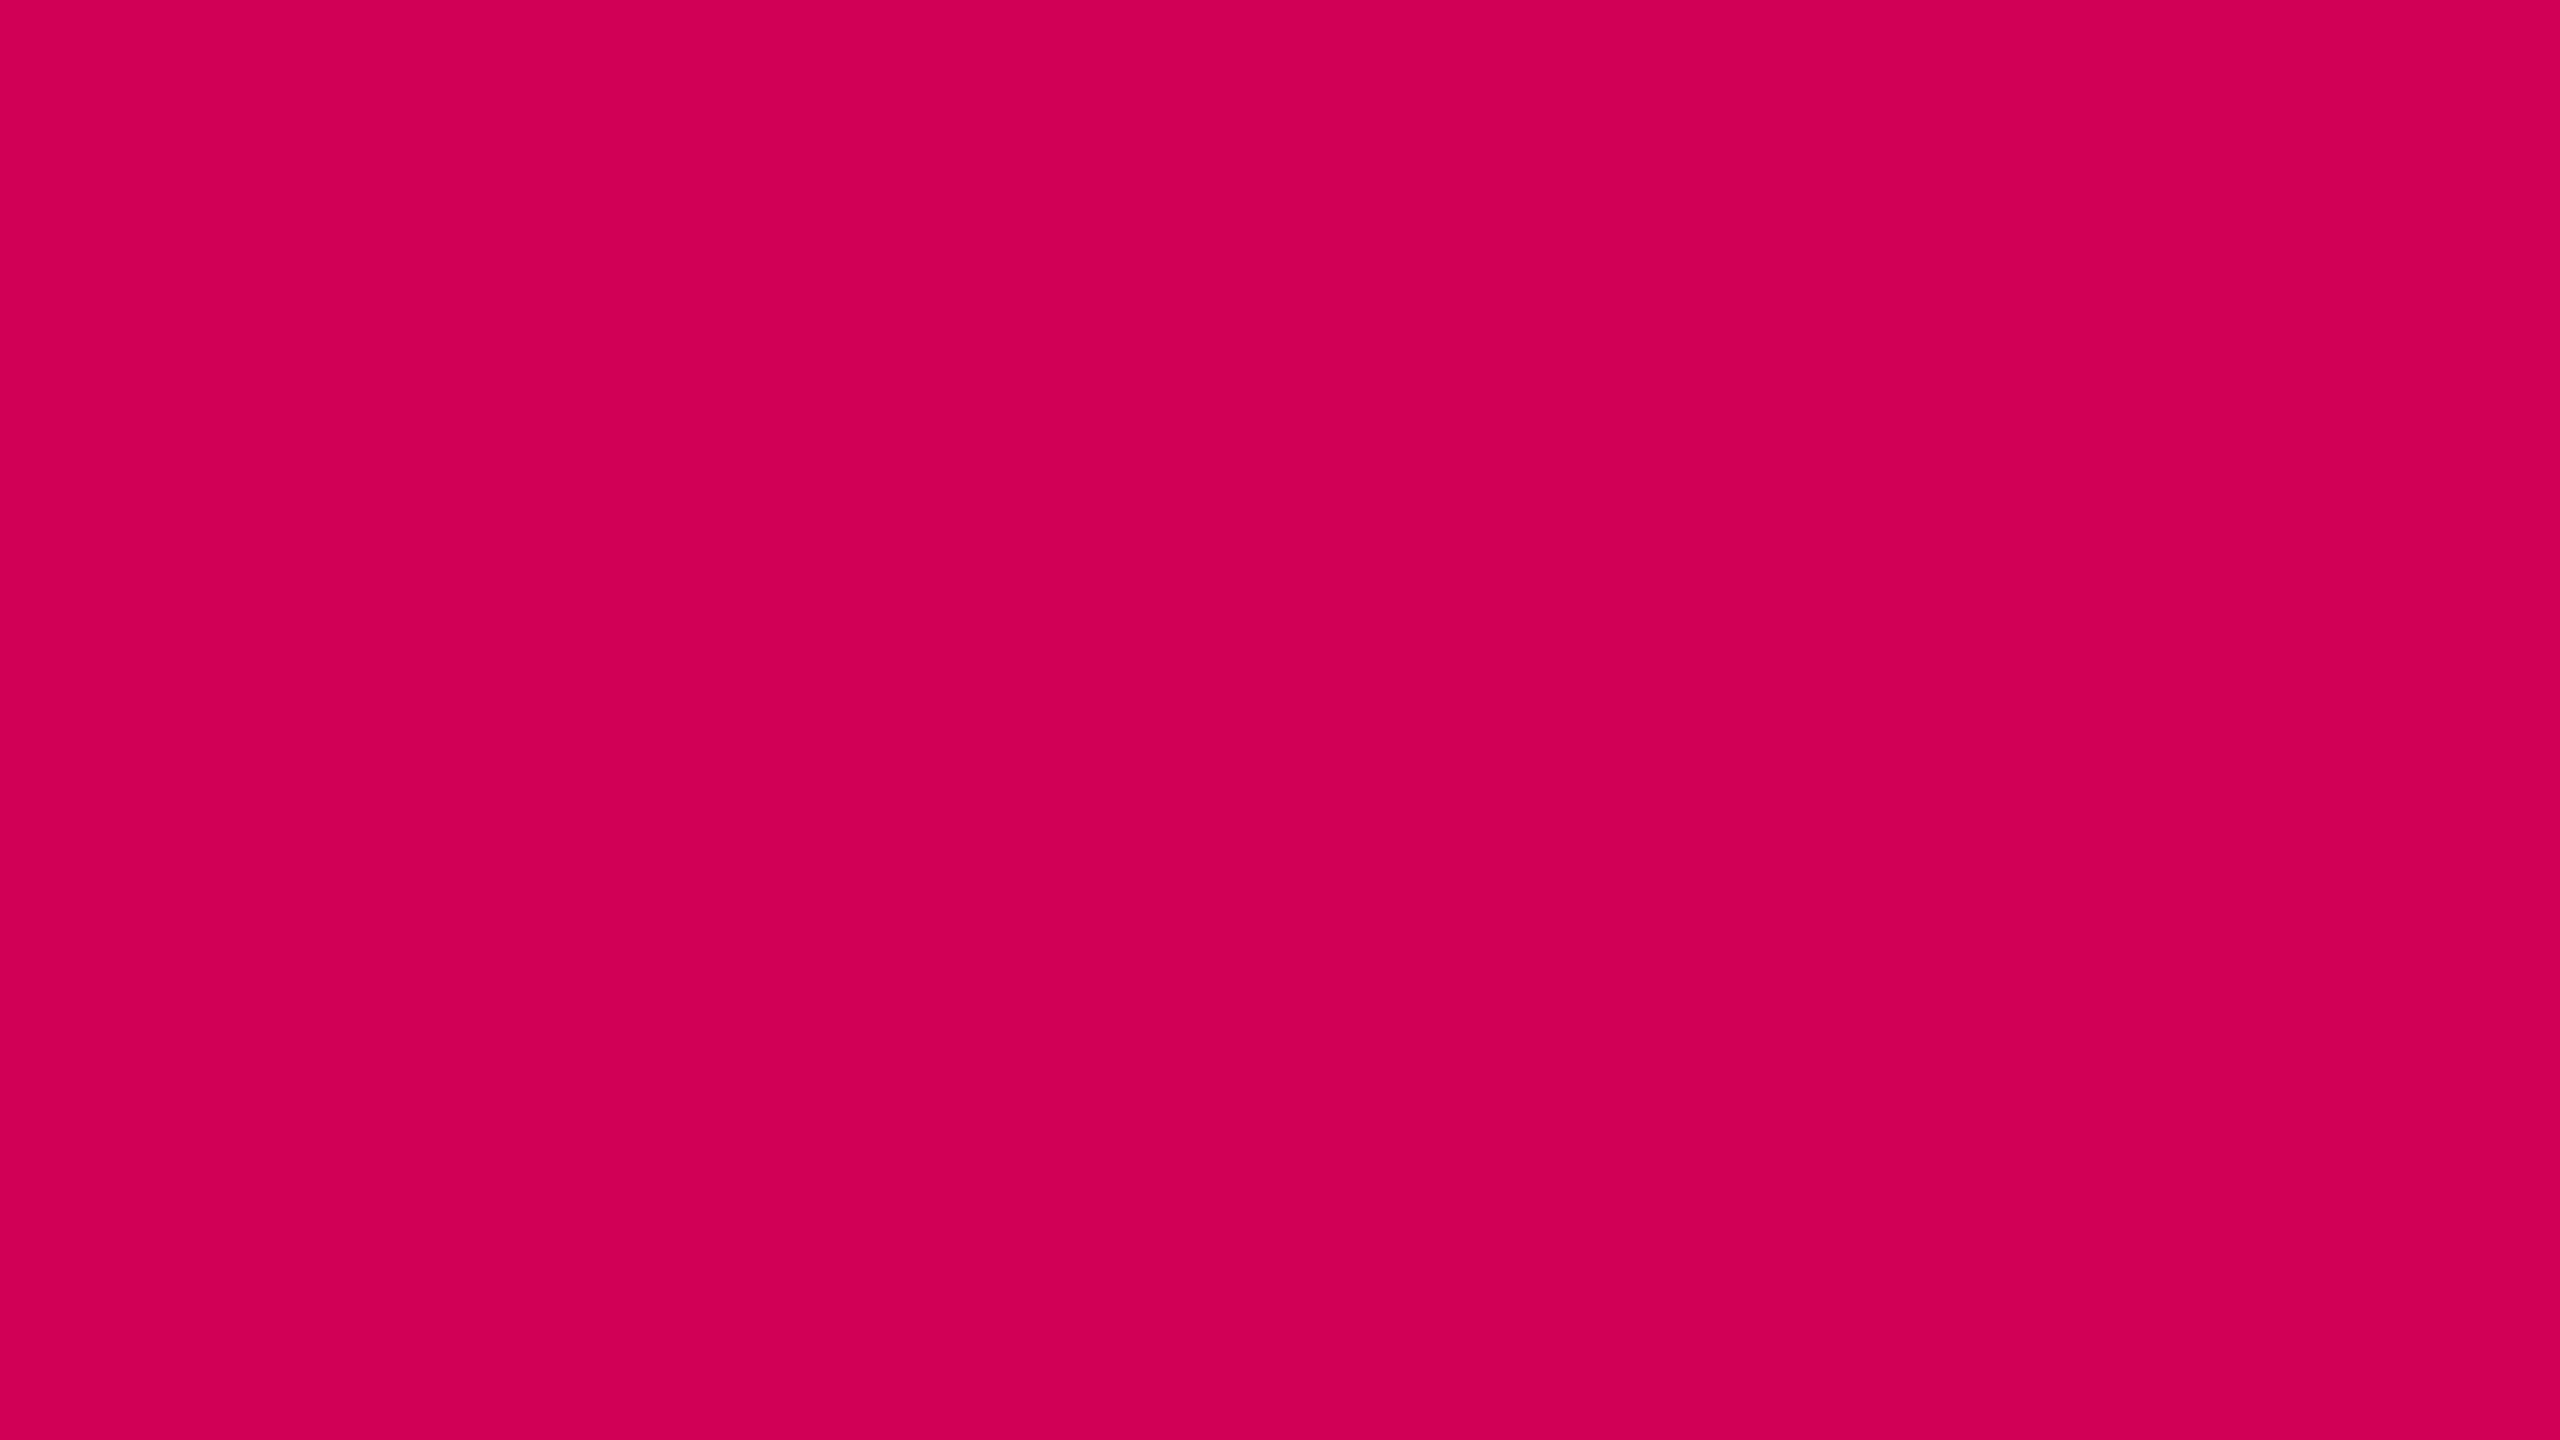 2560x1440 Rubine Red Solid Color Background